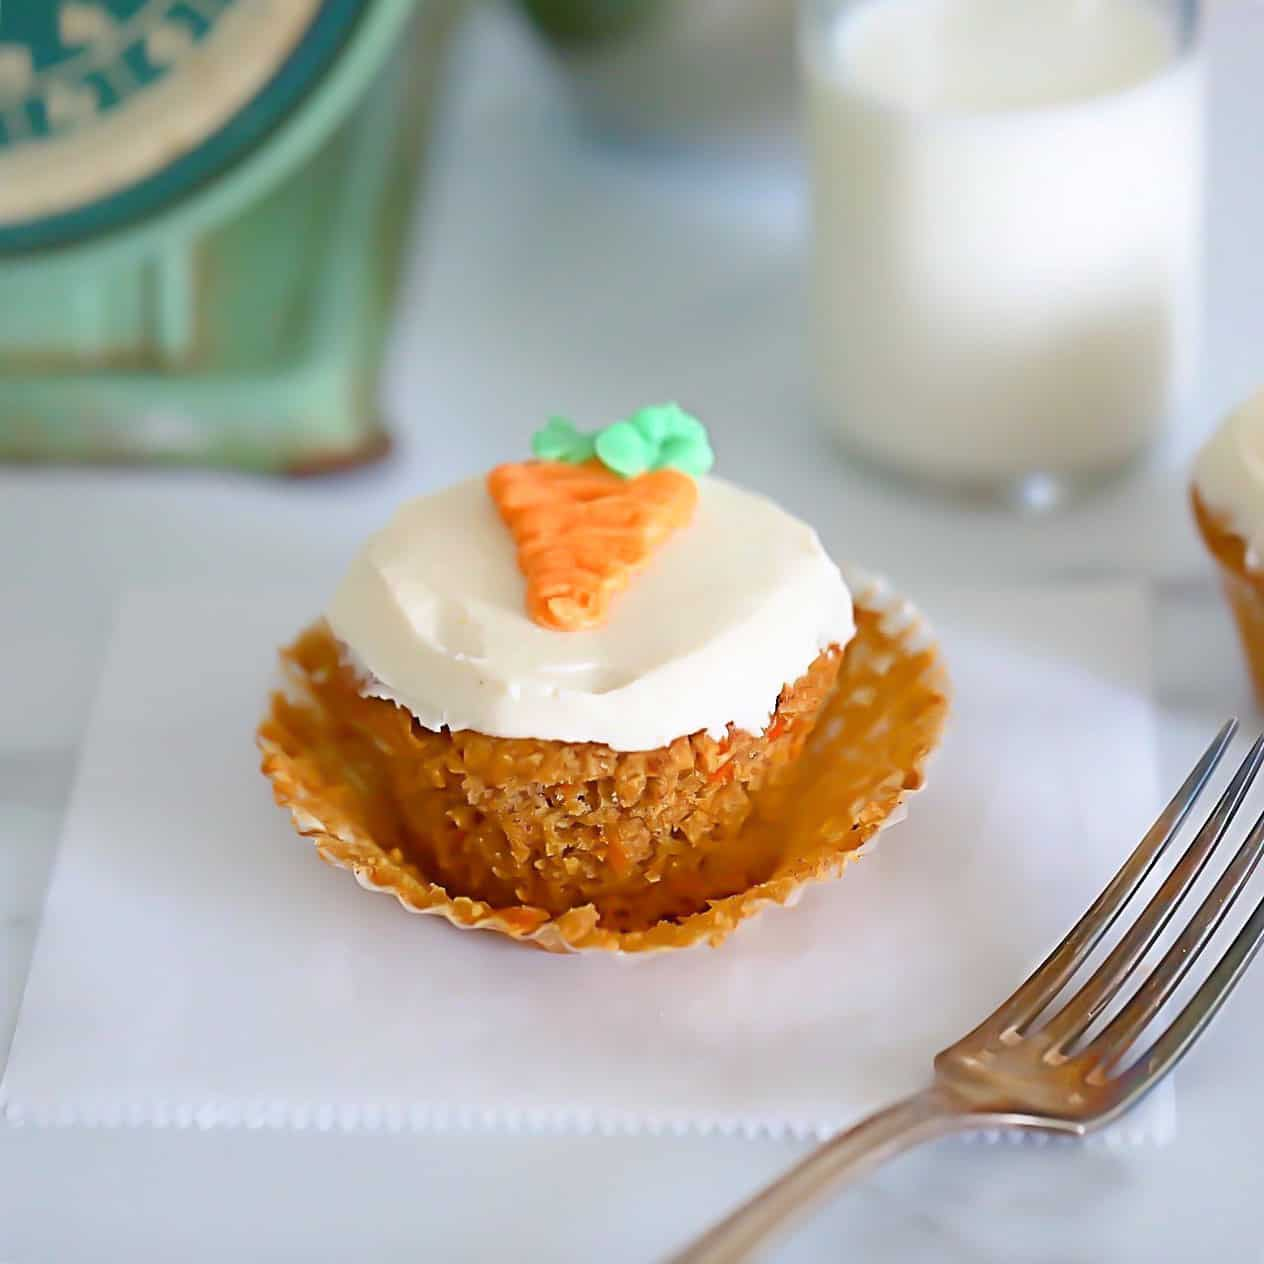 Keto Muffin with carrot